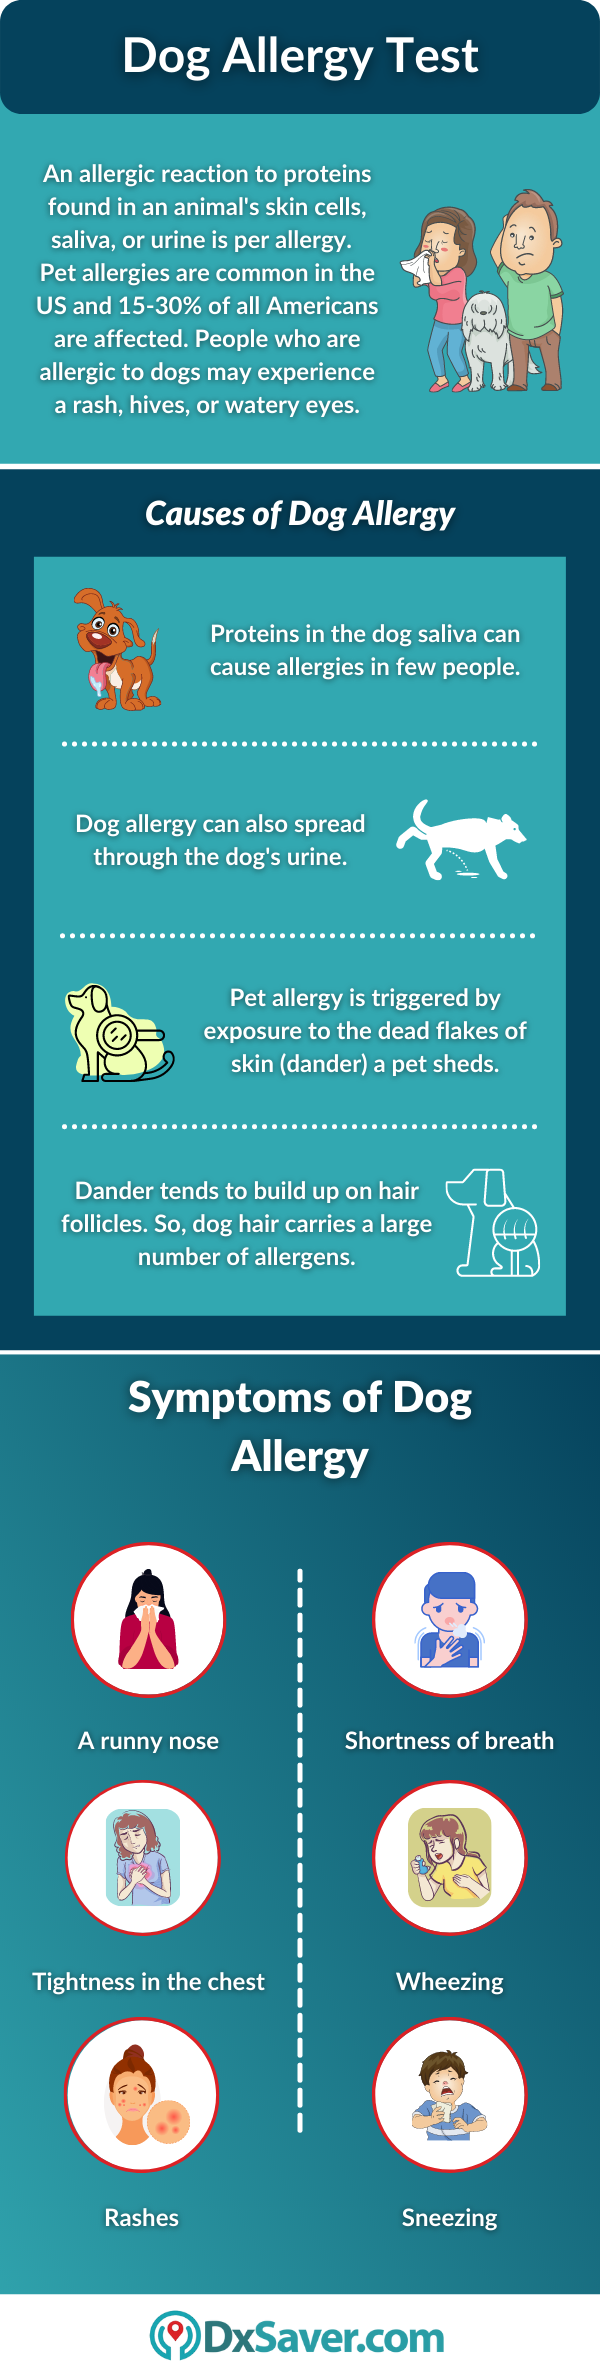 Dog Allergy: Causes and Symptoms